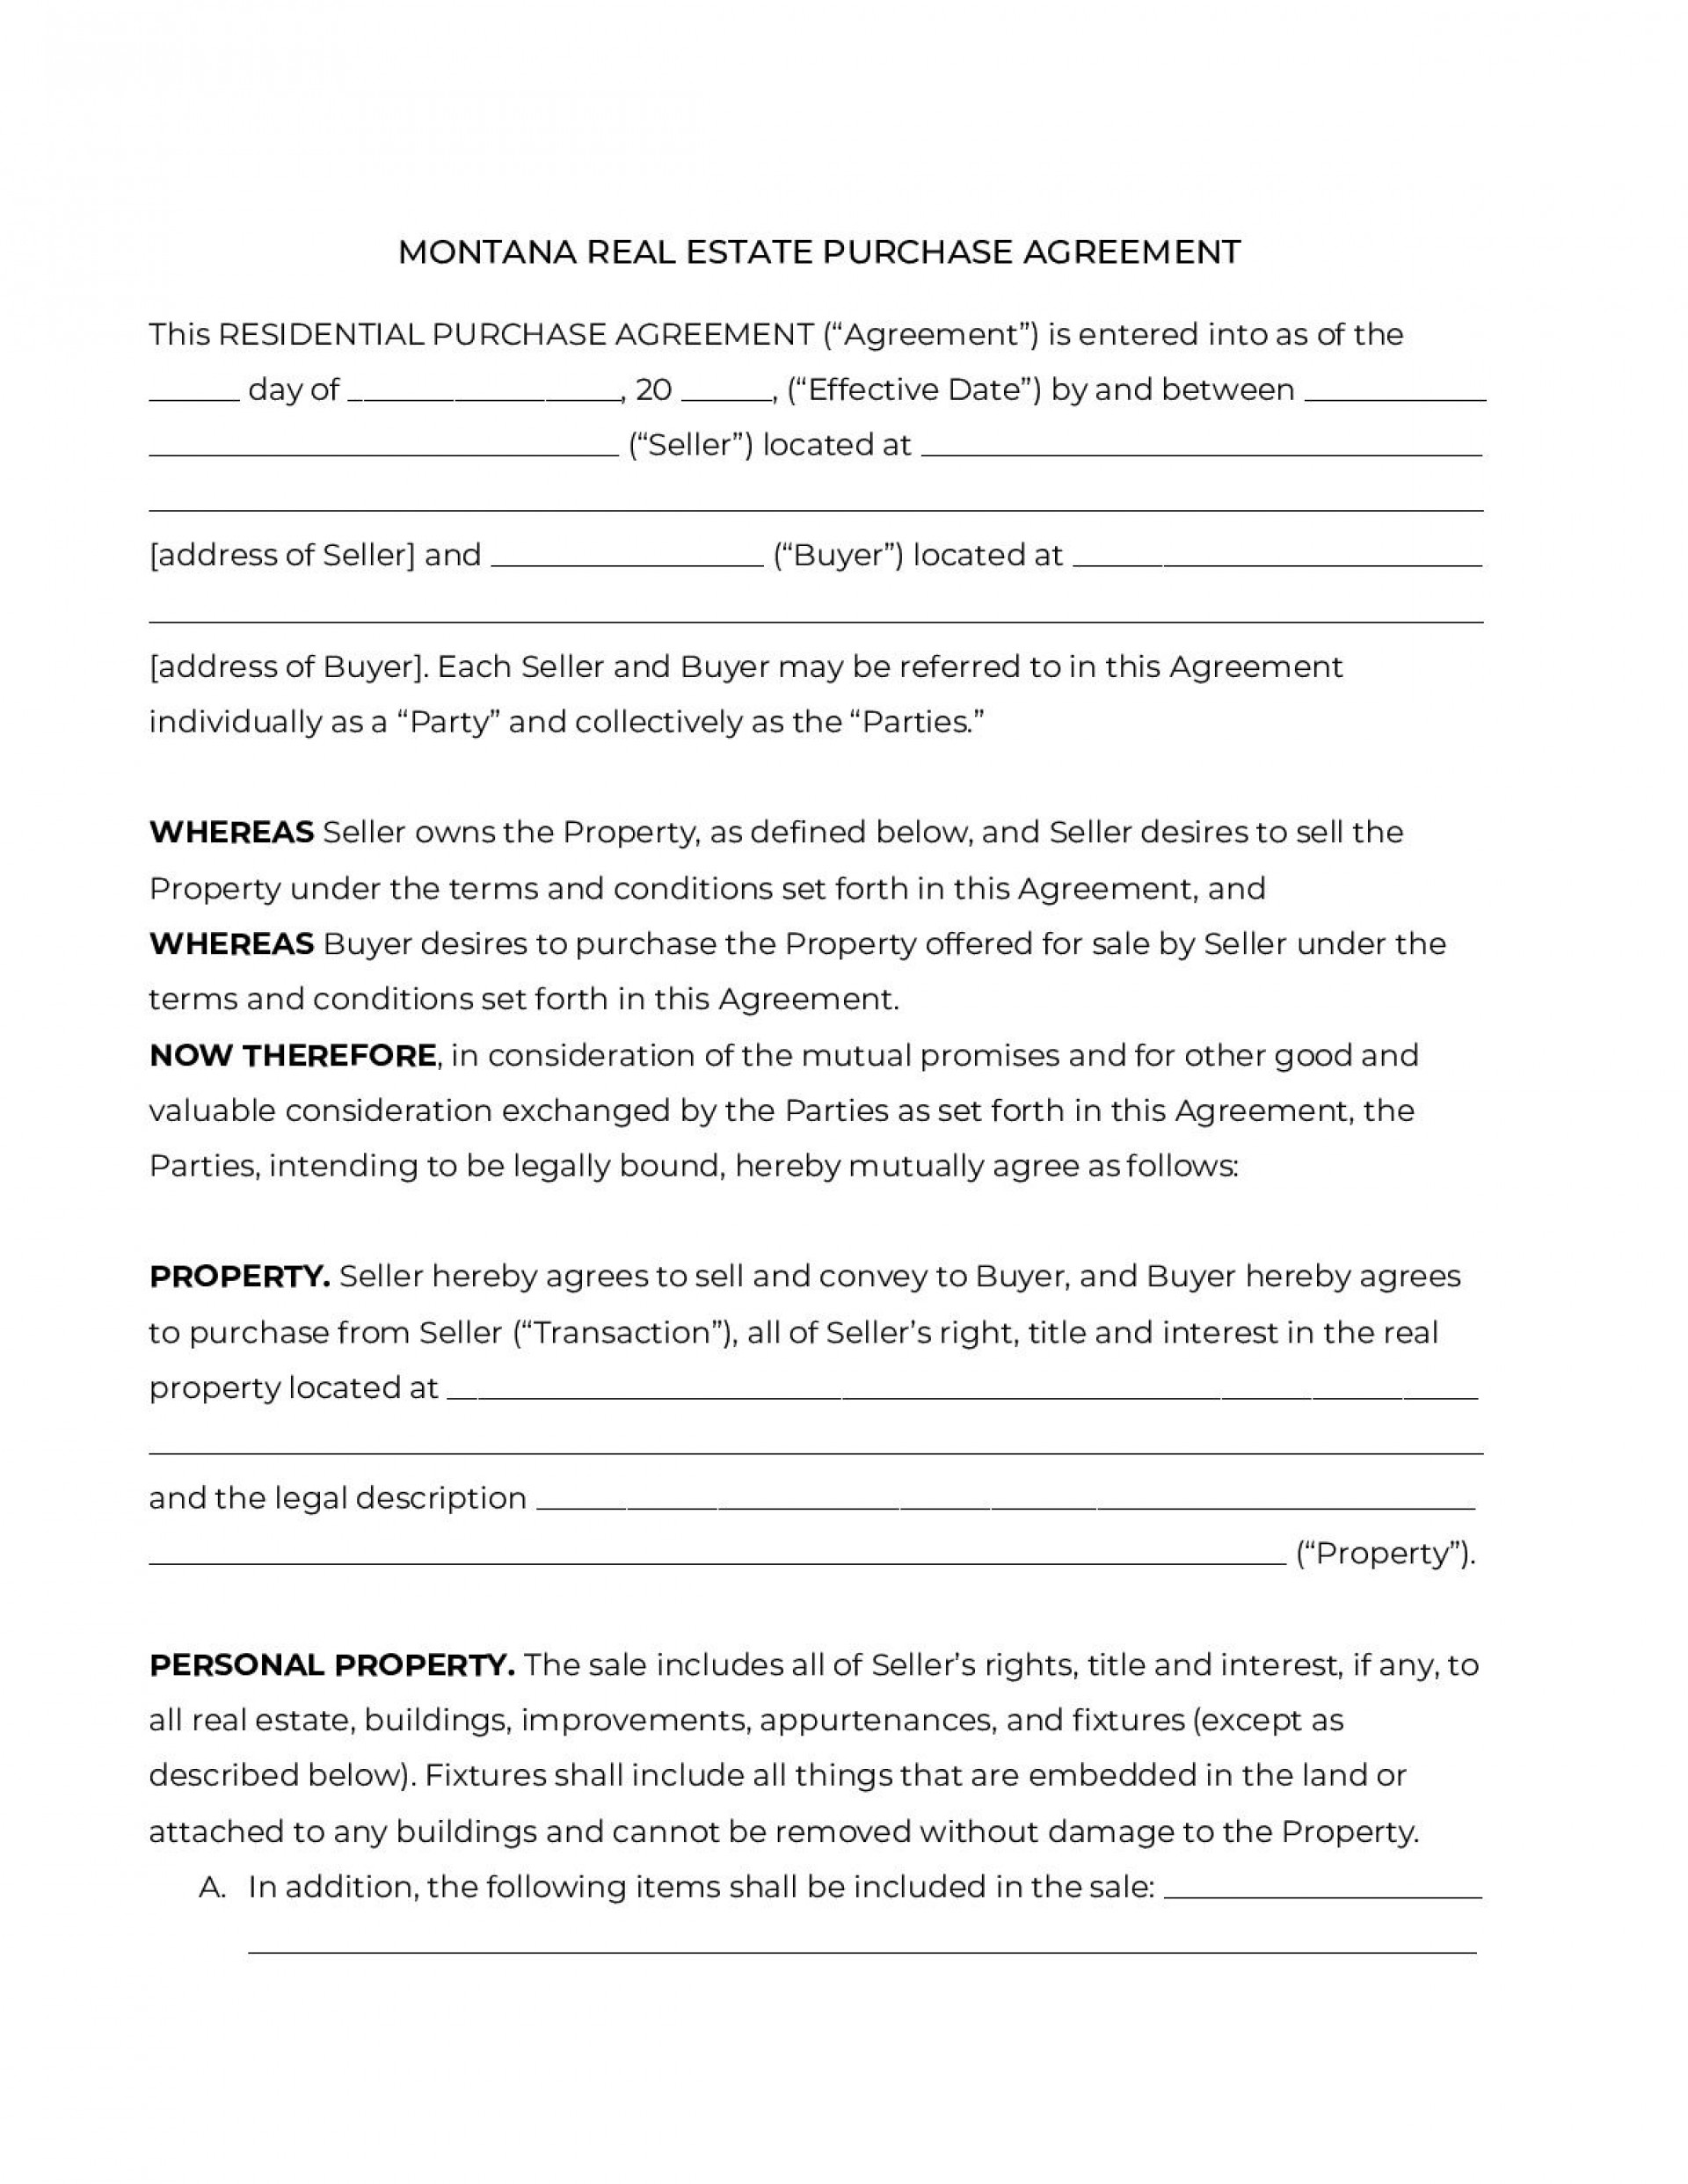 002 Phenomenal Real Estate Buy Sell Agreement Template Montana High Definition  Form Free1920